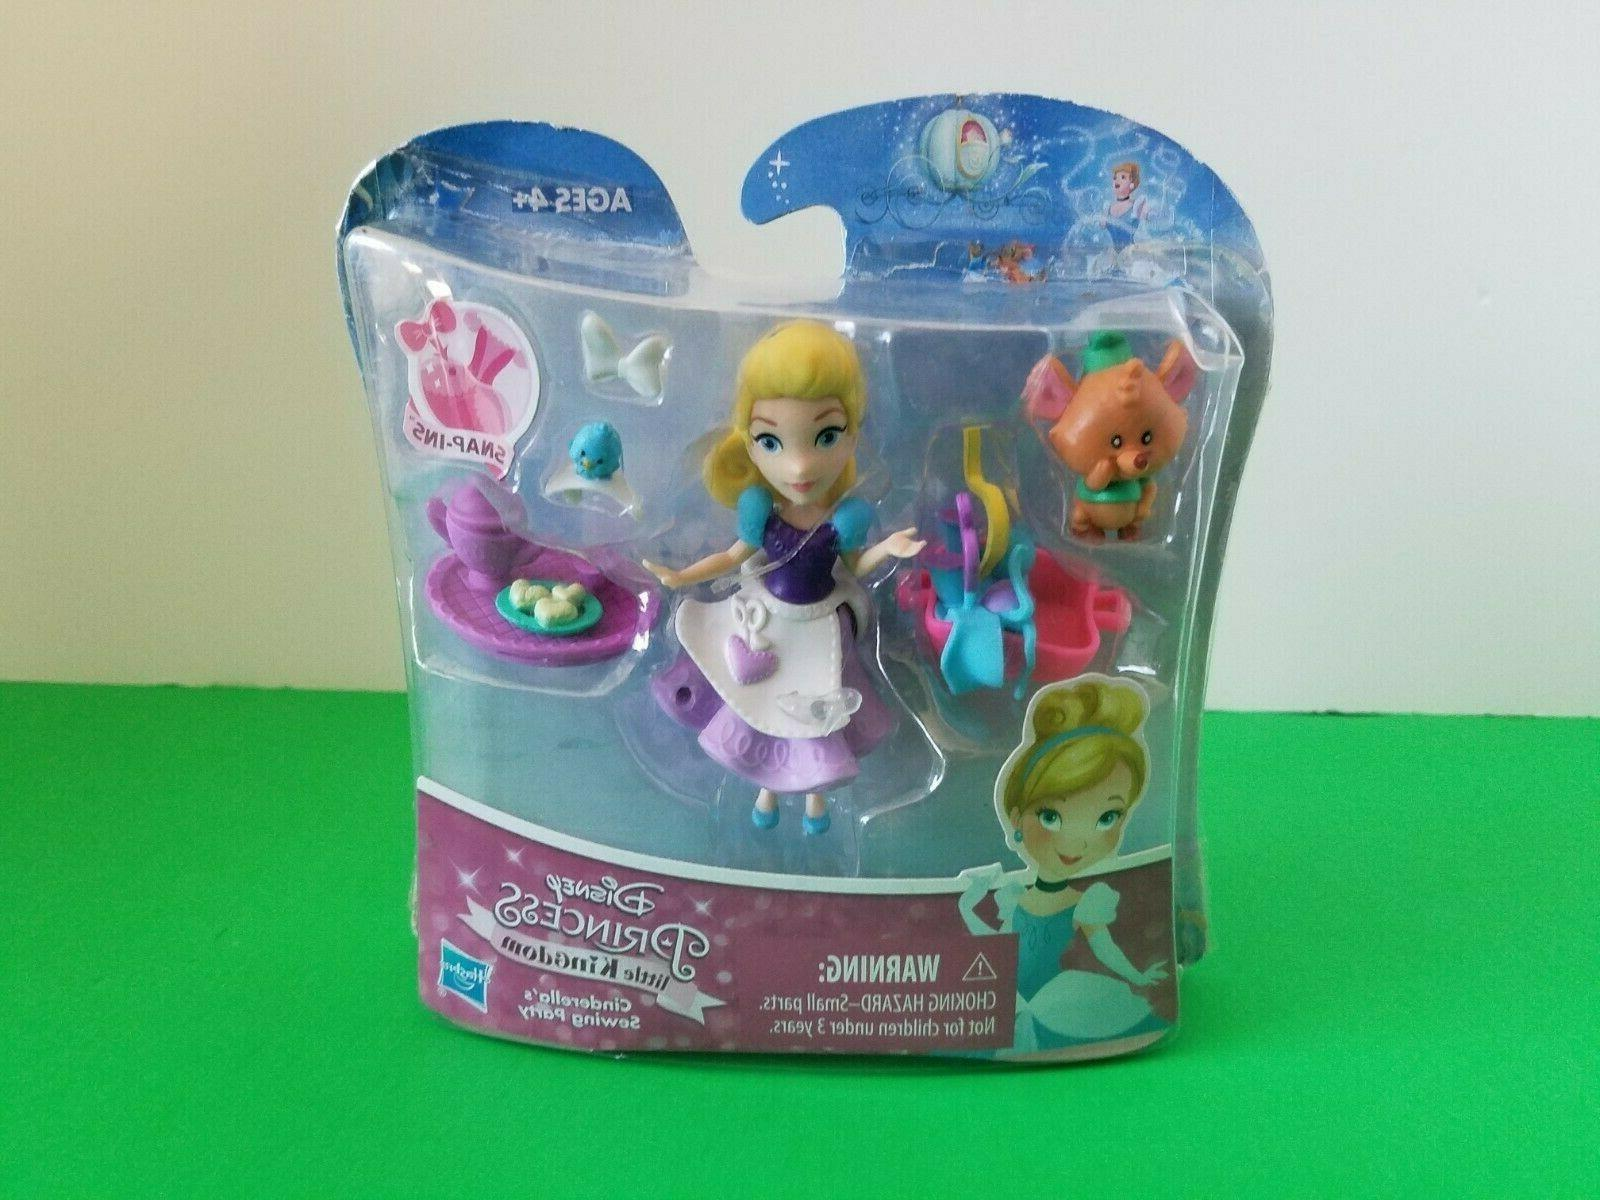 HASBRO Disney Princess Kingdom SNAP IN